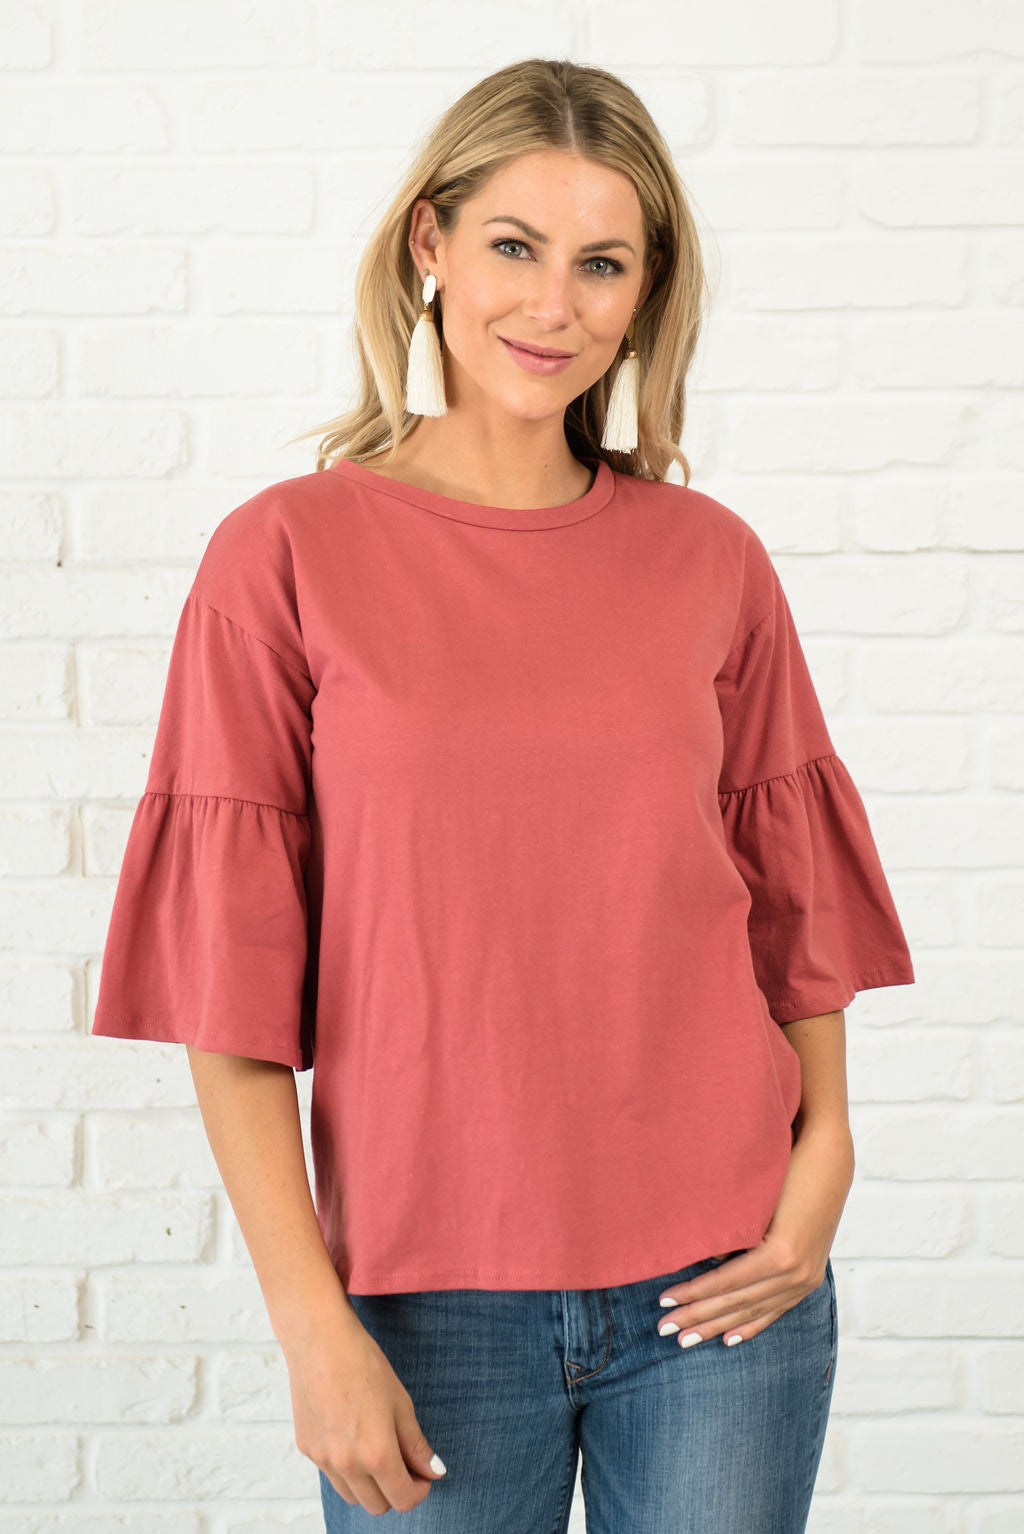 BAILEY TOP IN MARSALA WITH 3/4 LENGTH SLEEVES